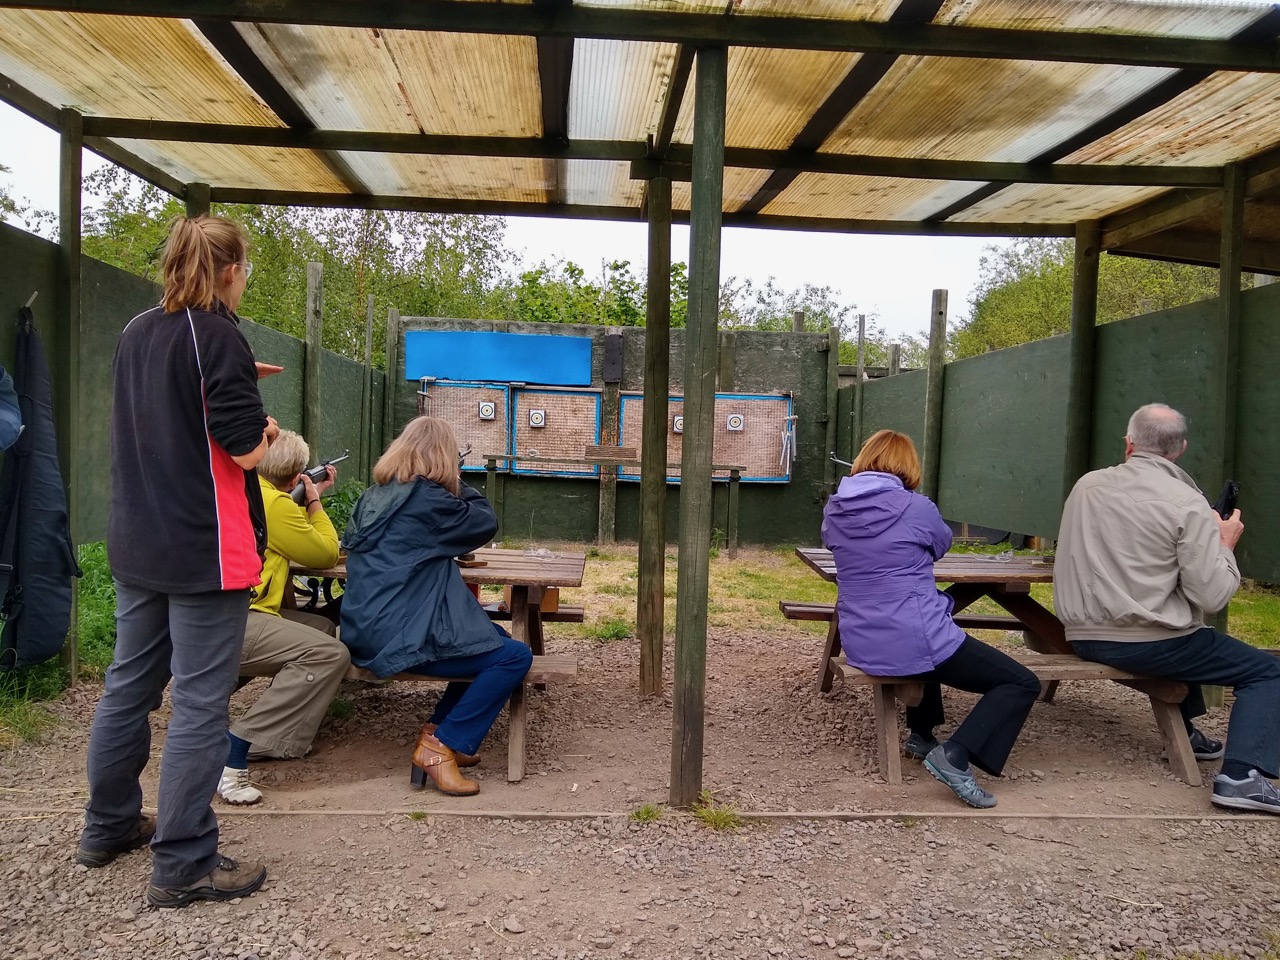 Rifle Shooting2 - LOPC 29/5/19